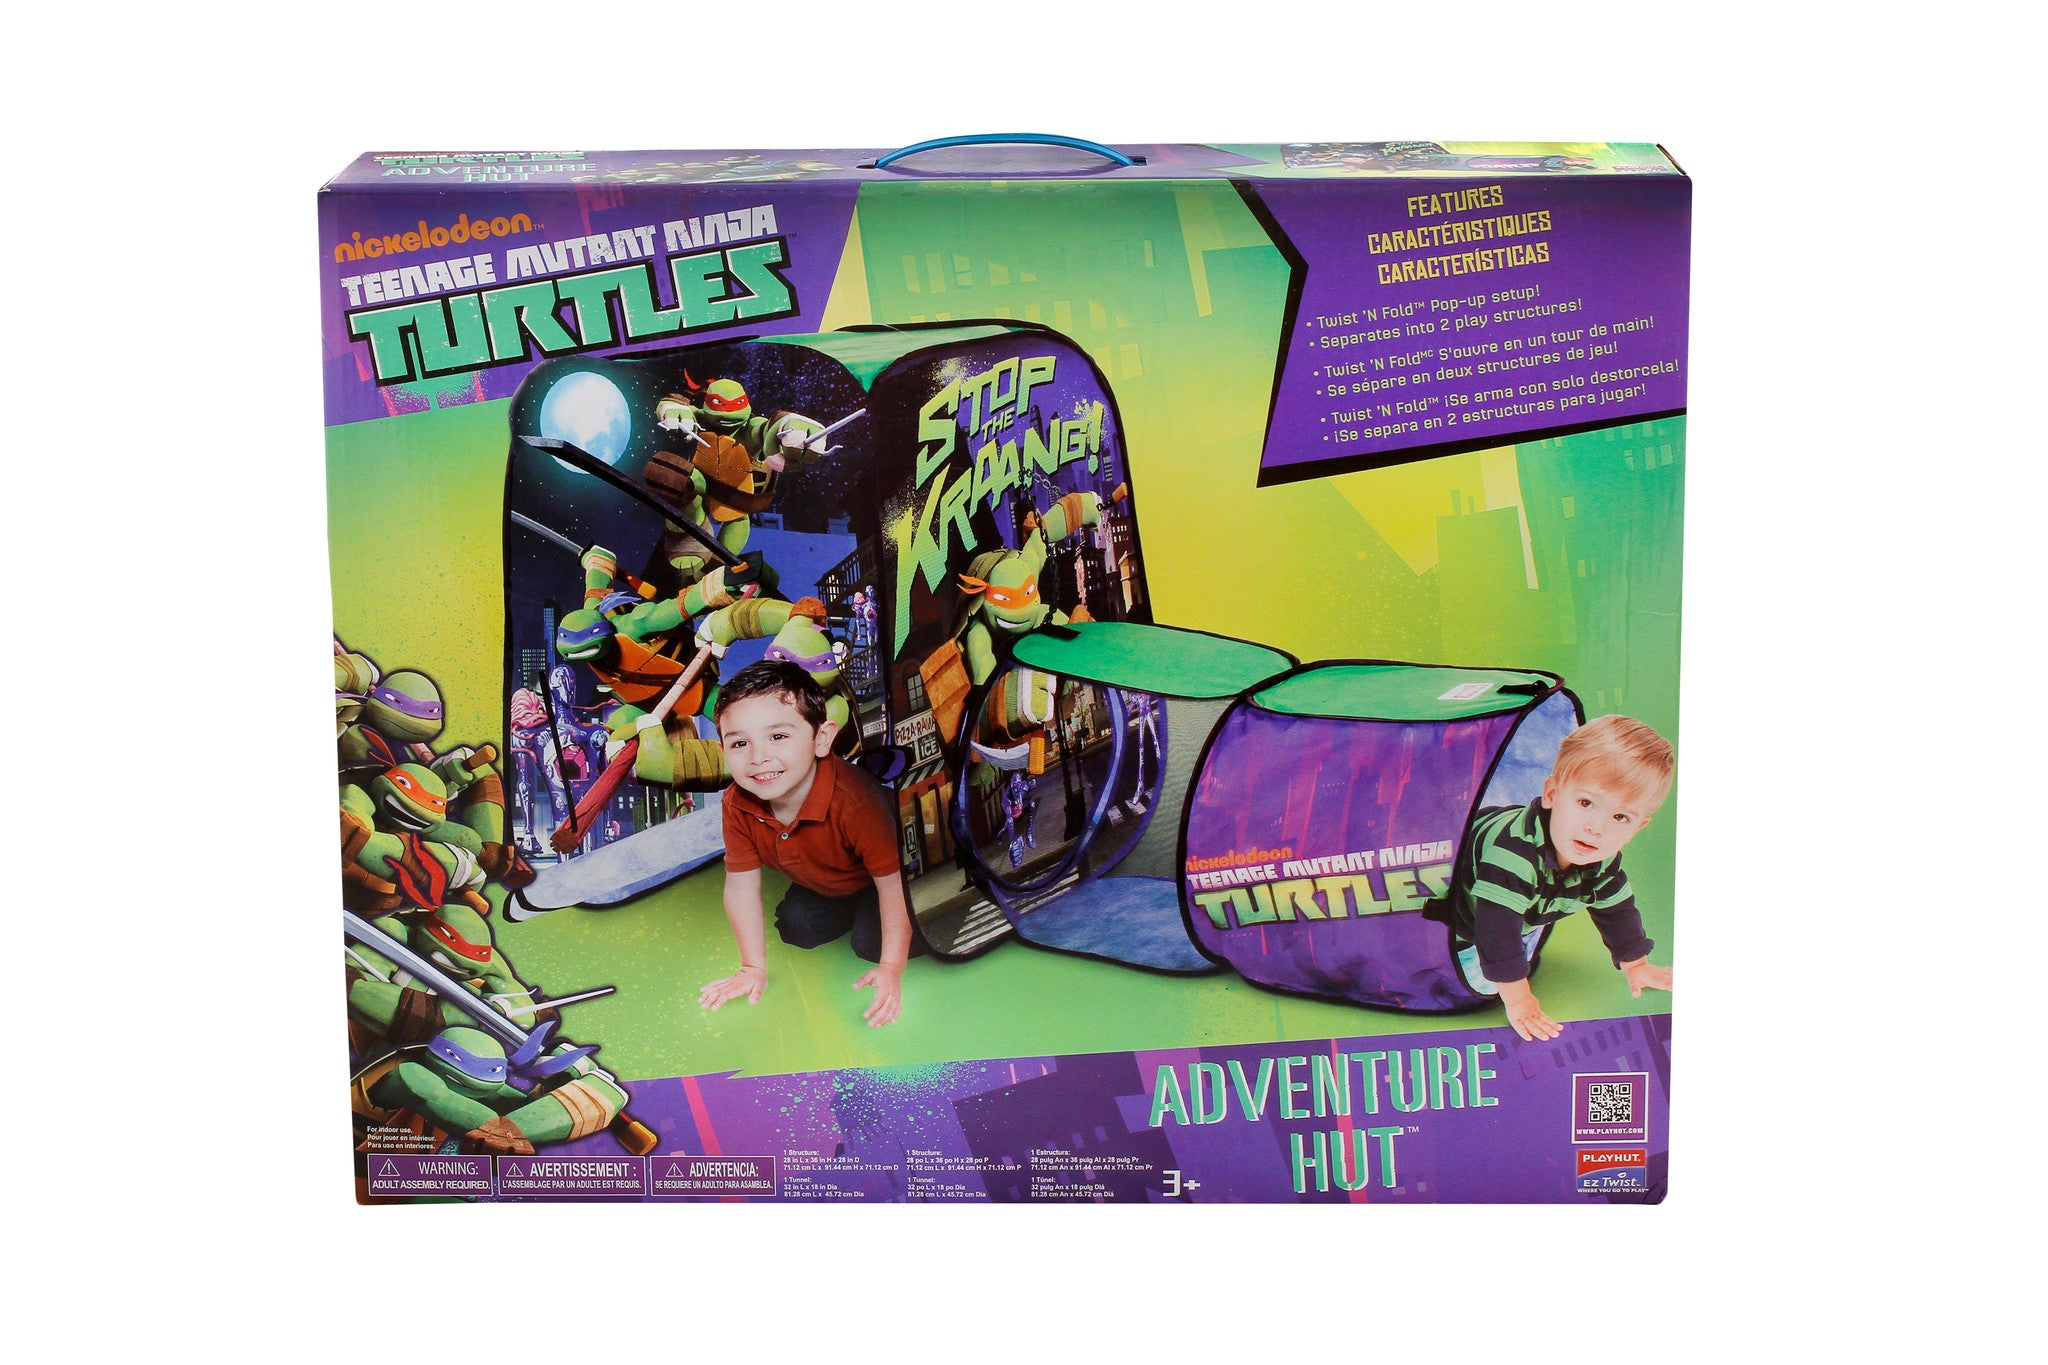 Teenage Mutant Ninja Turtles Adventure Hut - Little TroubleMakers | Kids Toys and Fashion